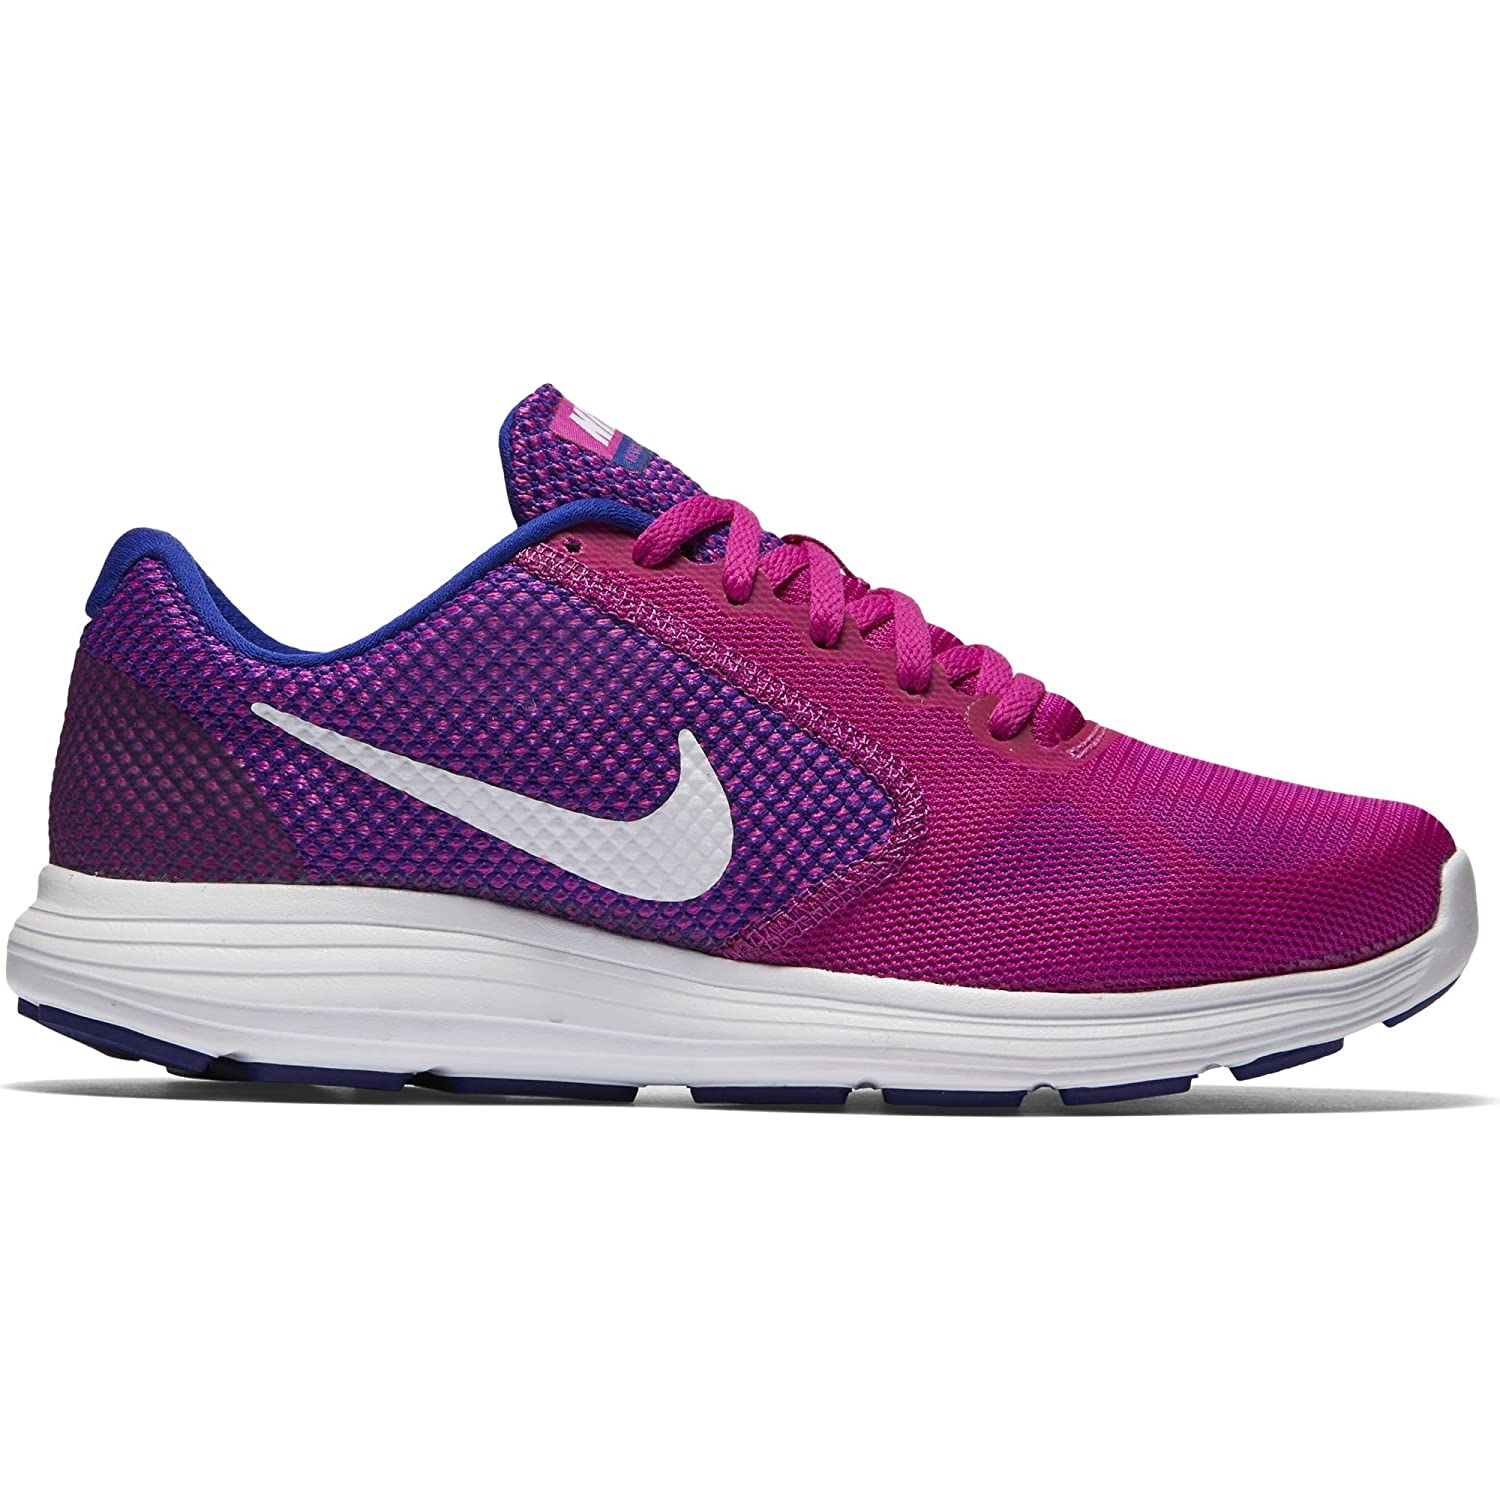 b3aded3576e9 Nike Women s WMNS Revolution 3 Running Shoes